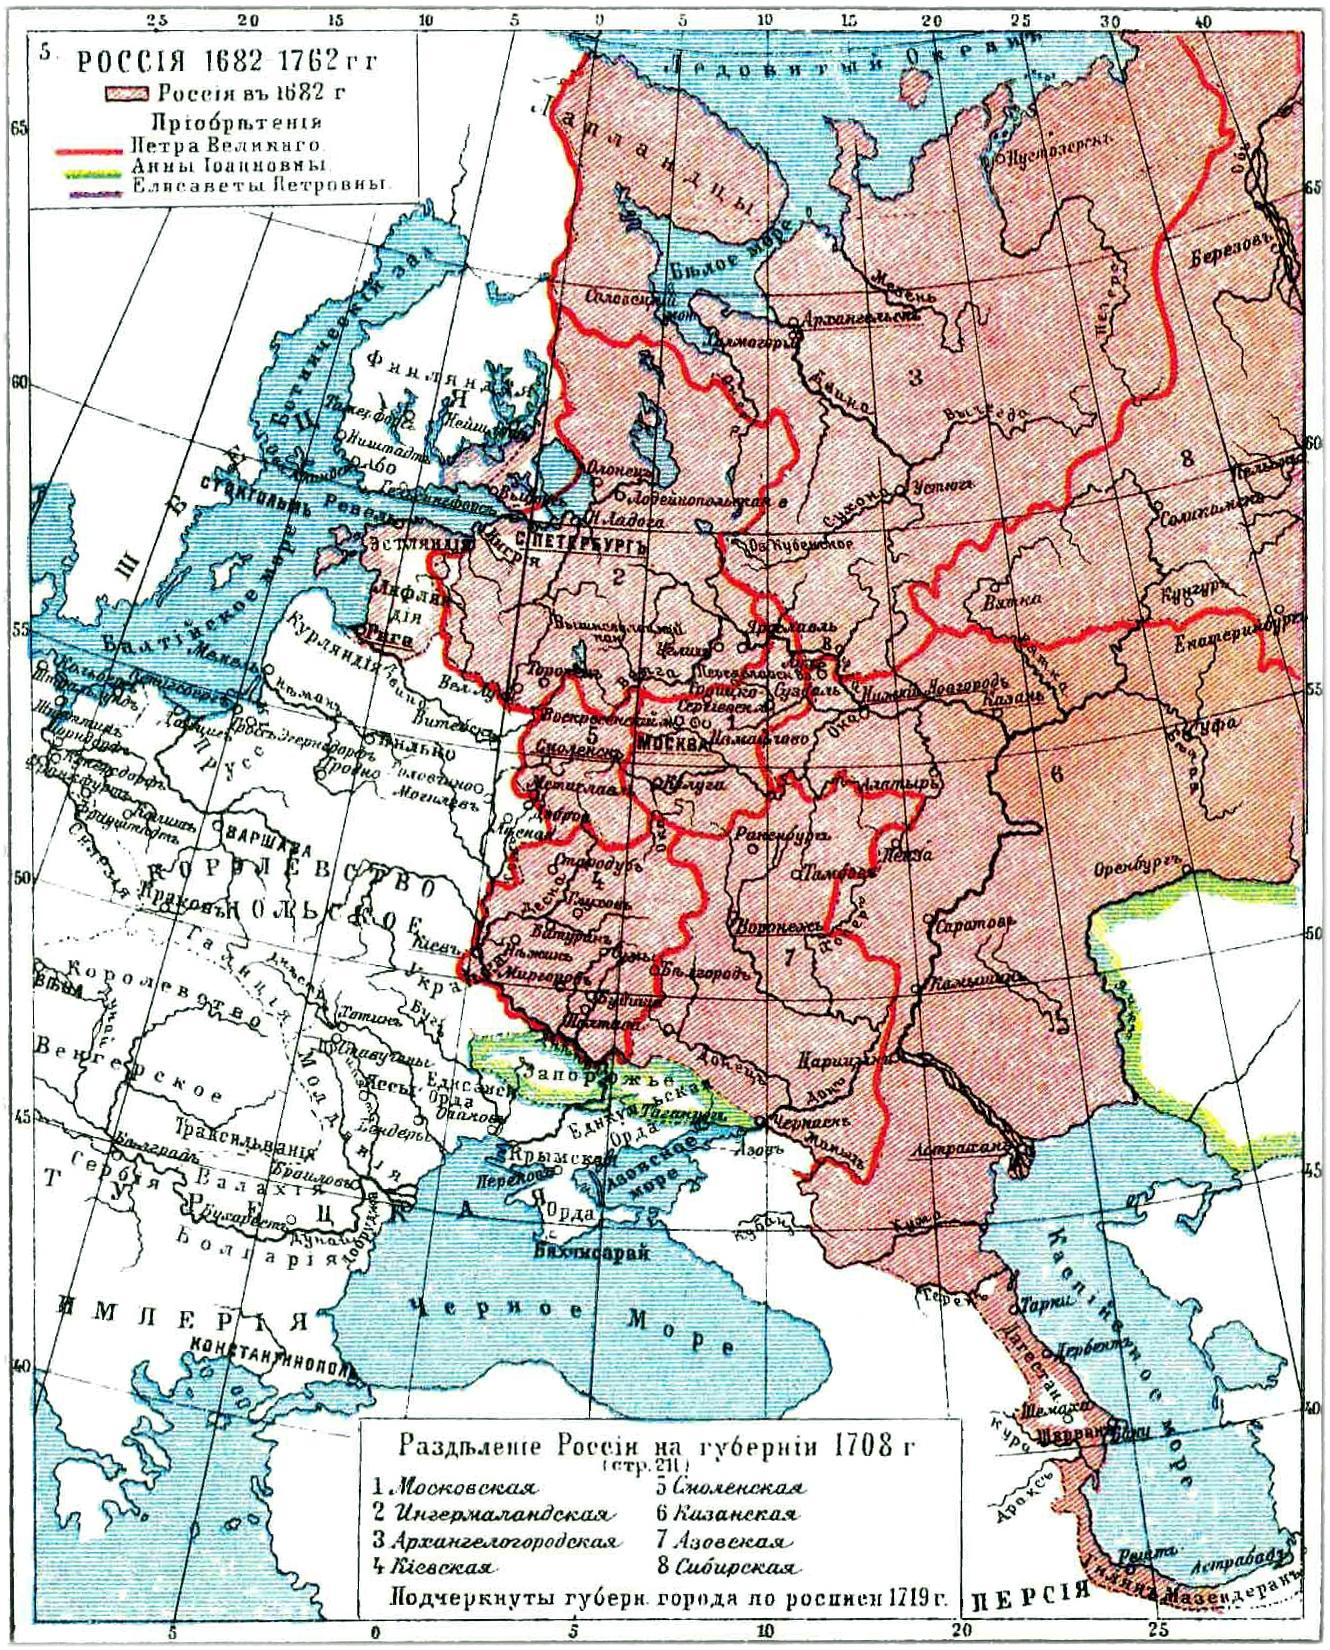 History_of_Russia,_1682-1762.jpg